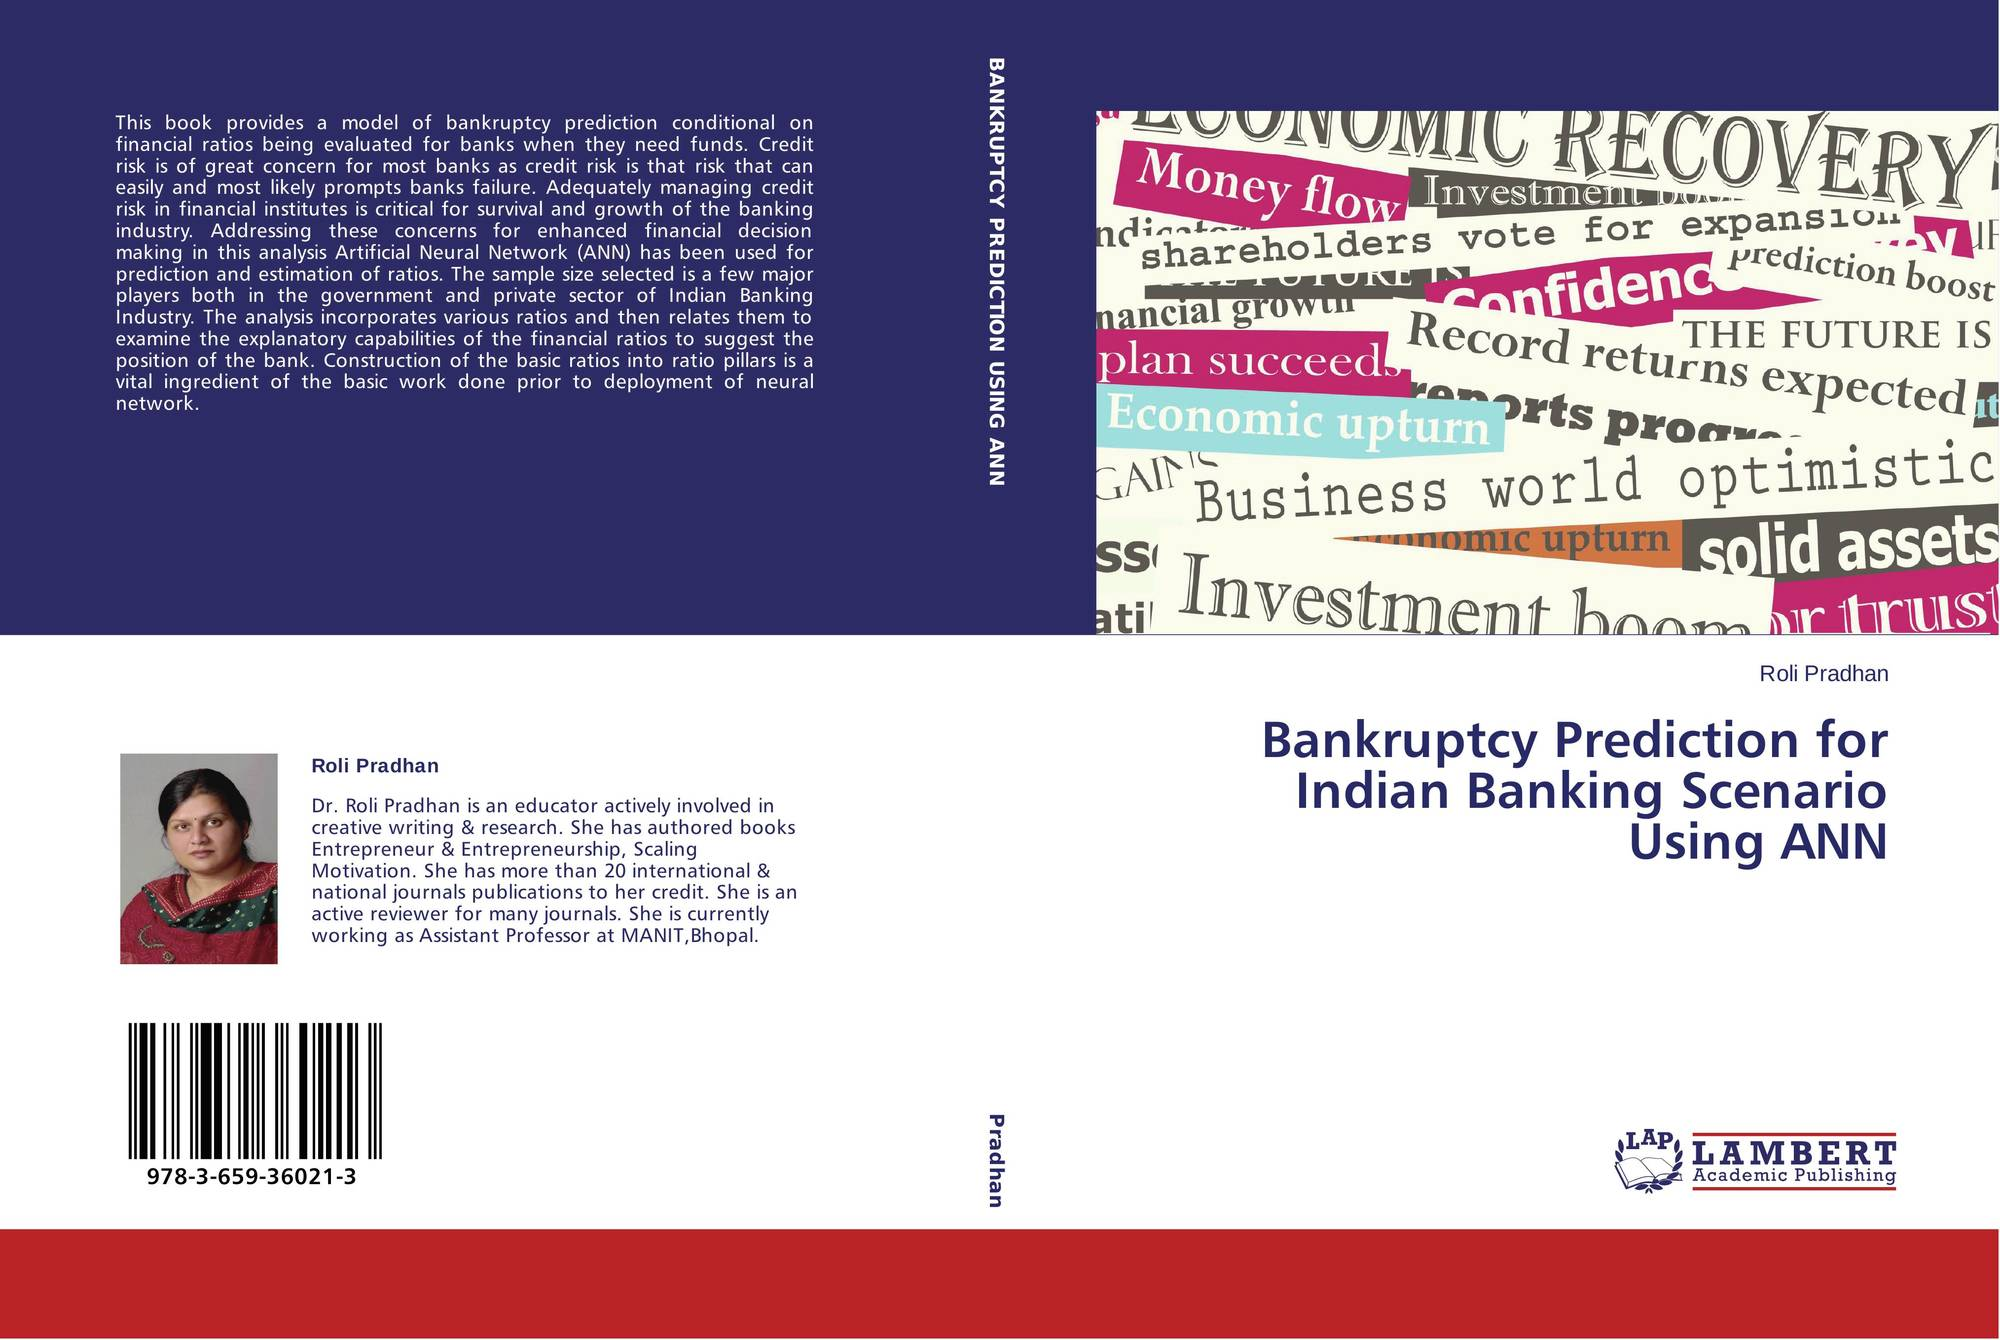 indian banking scenario An overview of indian banking industry sunindita pan, lecturer in economics, loyola academy degree & pgcollege, alwal, secunderabad, telangana  introduction and general scenario of indian banking industry the second part discuses the various challenges and opportunities faced by indian banking industry.